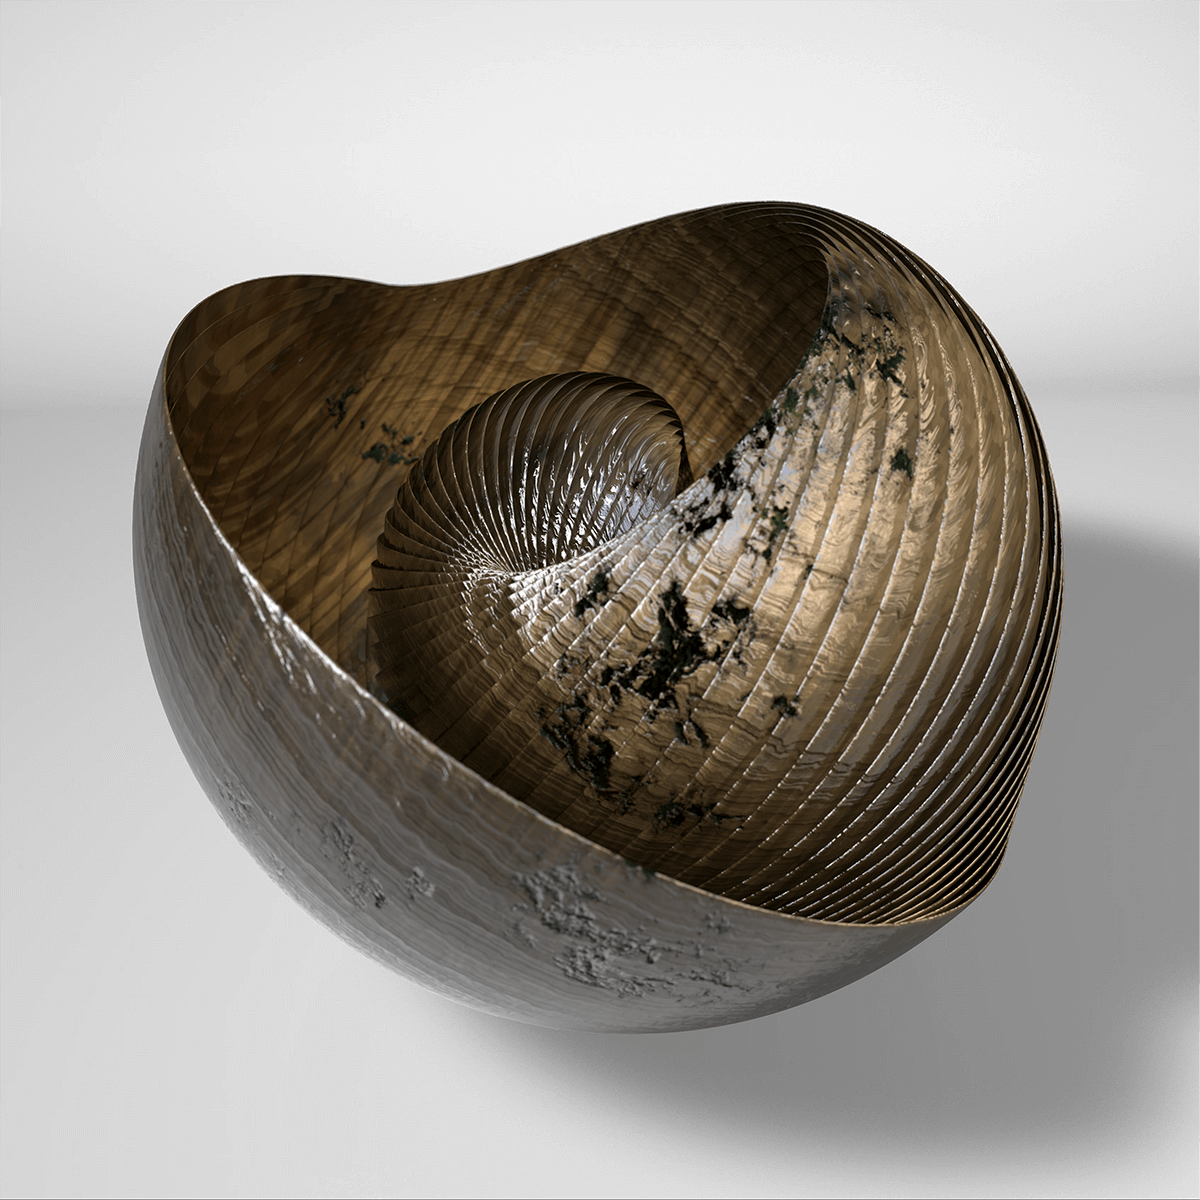 3D render of a abstract trilobite